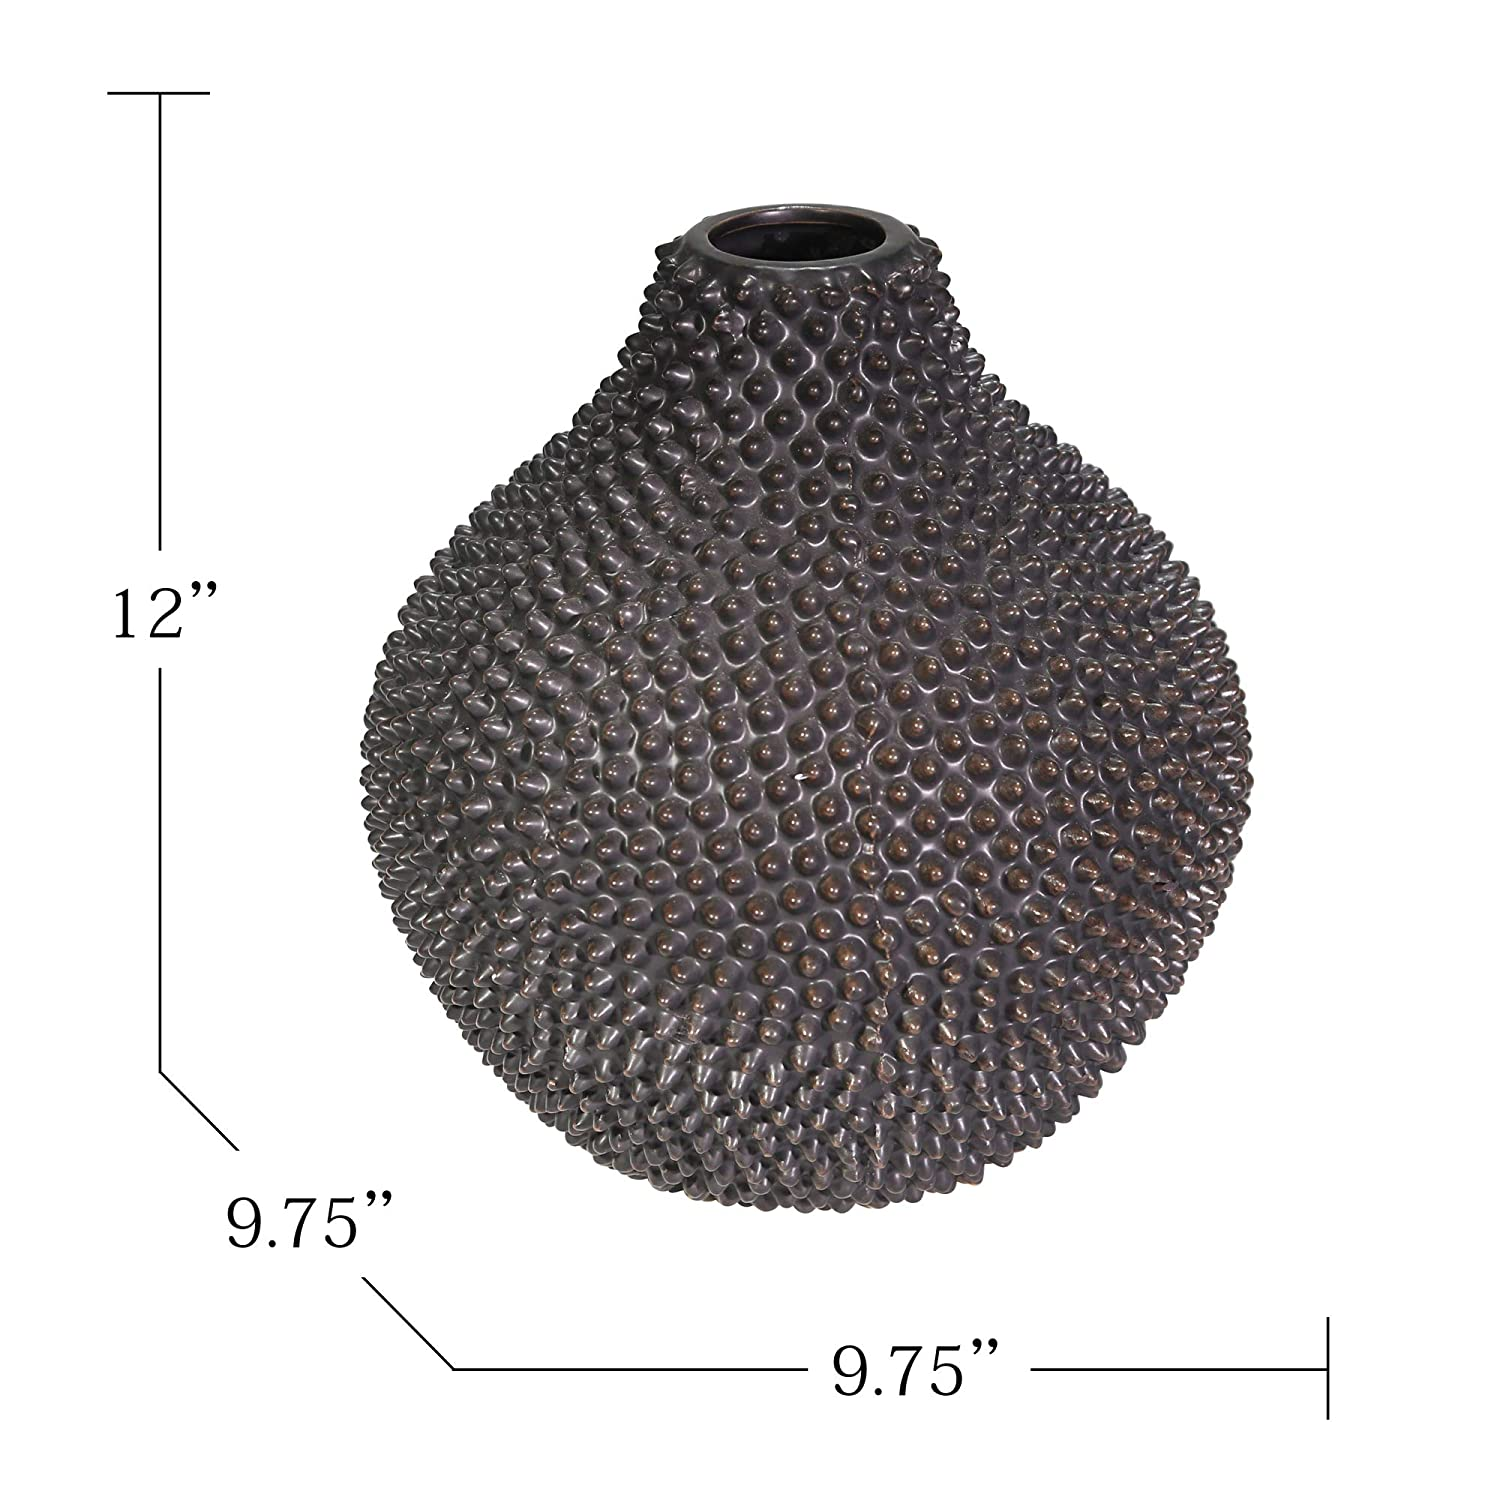 Matte Black 9.75 x 9.75 x 12 Inches, Sagebrook Home 12068-25 Decorative Ceramic Spike Vase